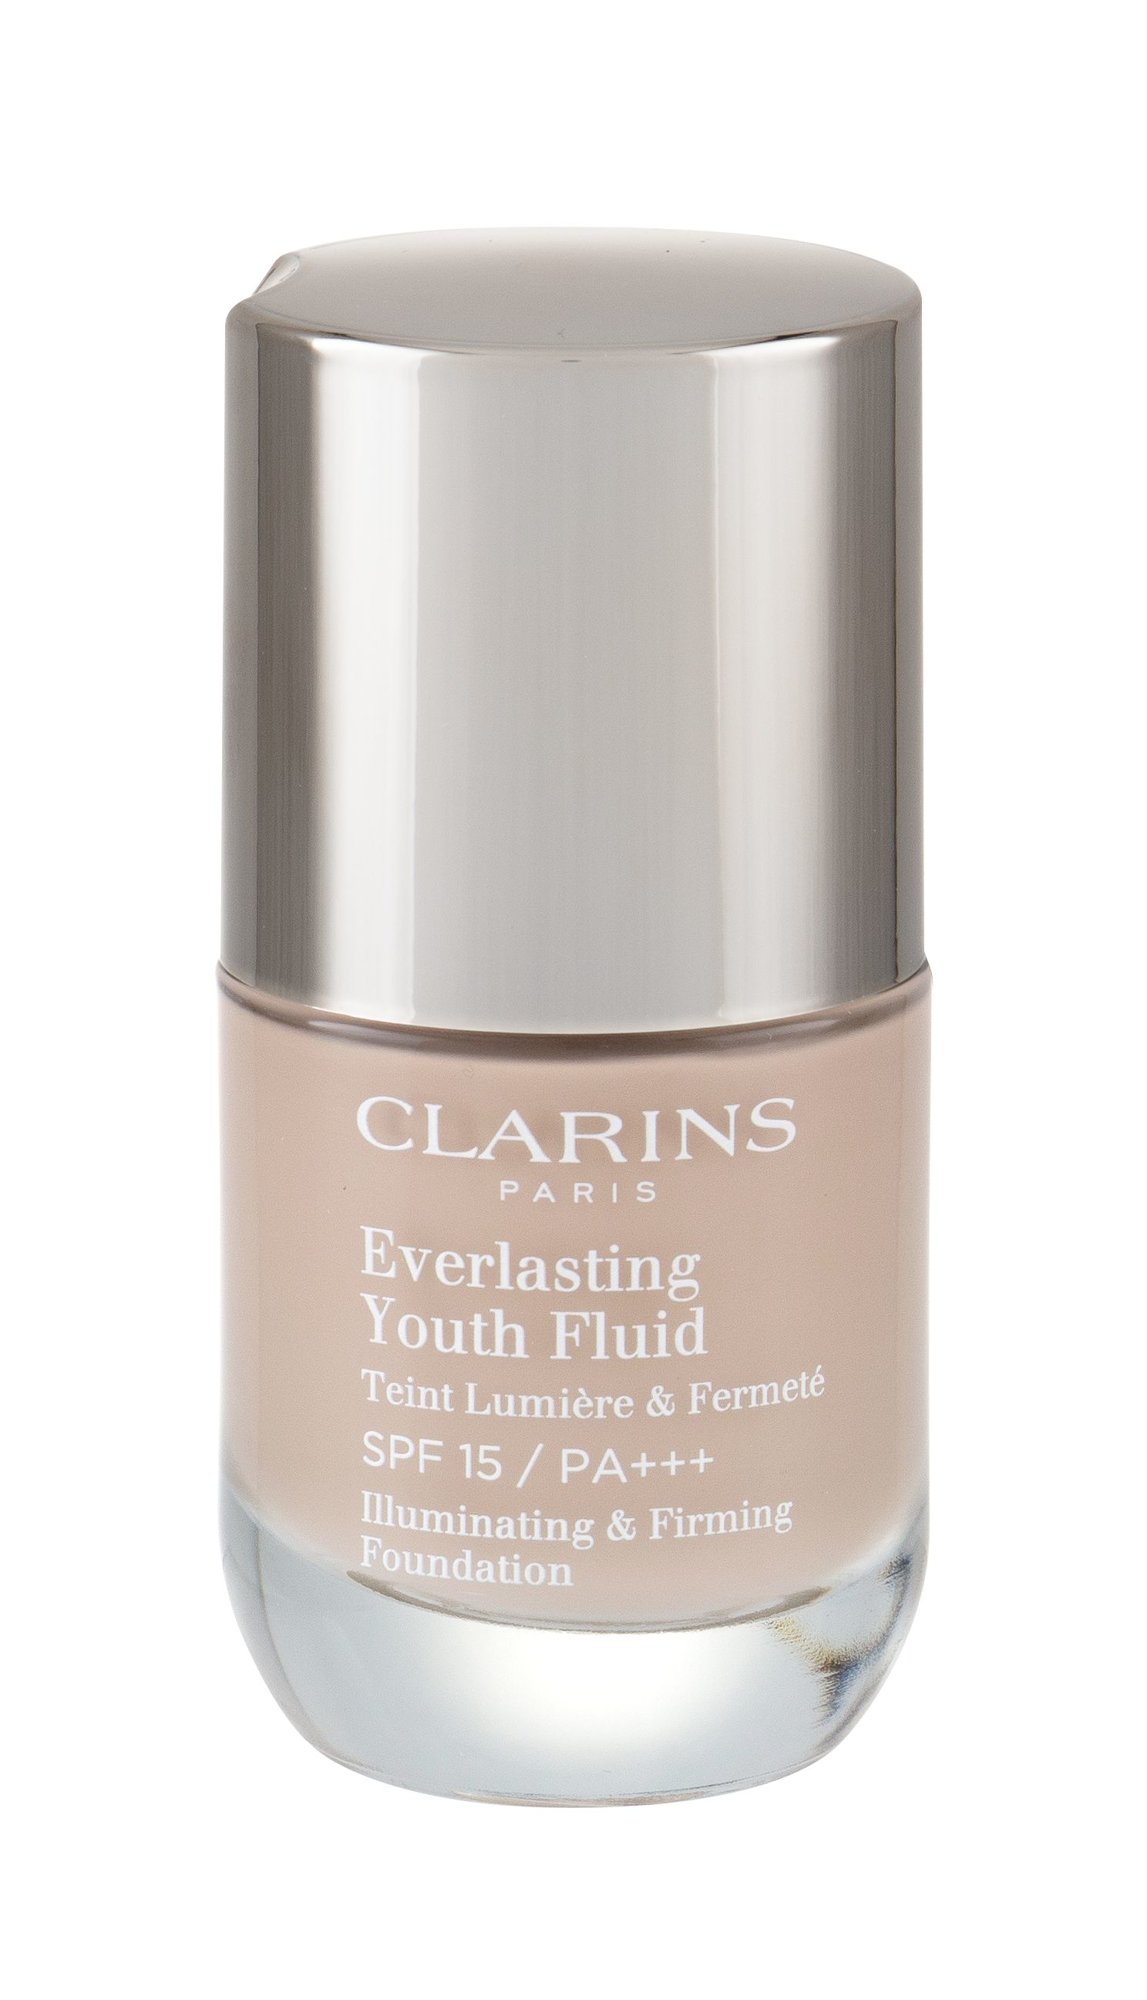 Clarins Everlasting Youth Fluid Makeup 30ml 111 Auburn